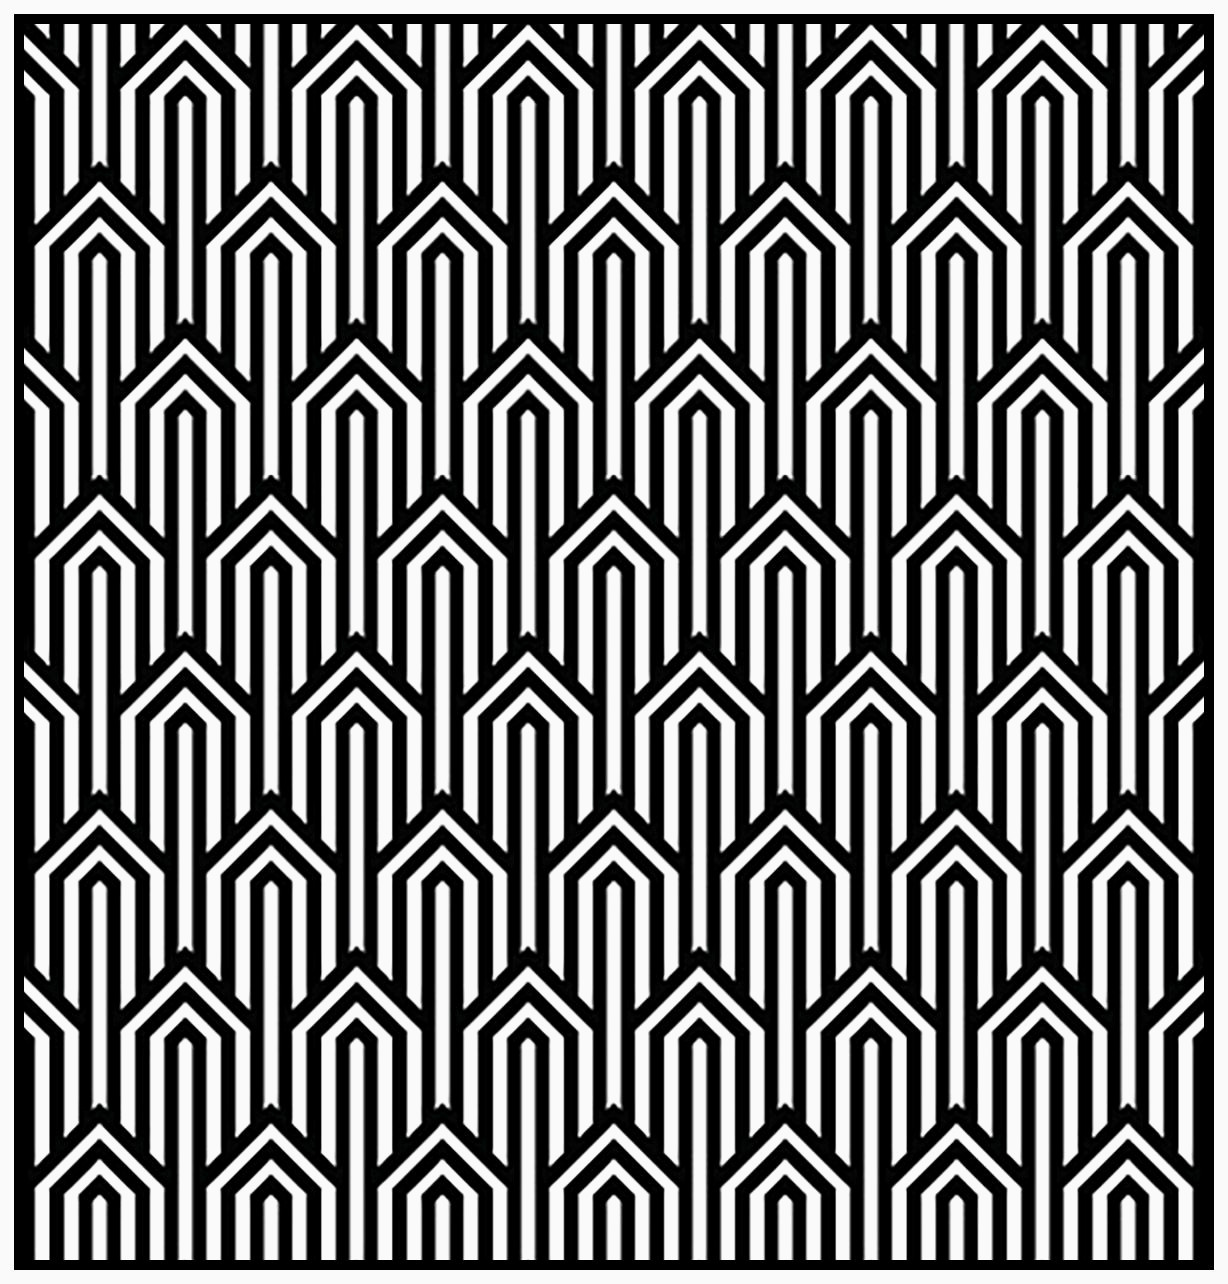 Peinture Geometrique Moderne Unique Art Deco Pattern Adult Coloring Page Style N°1 From the Gallery Galerie